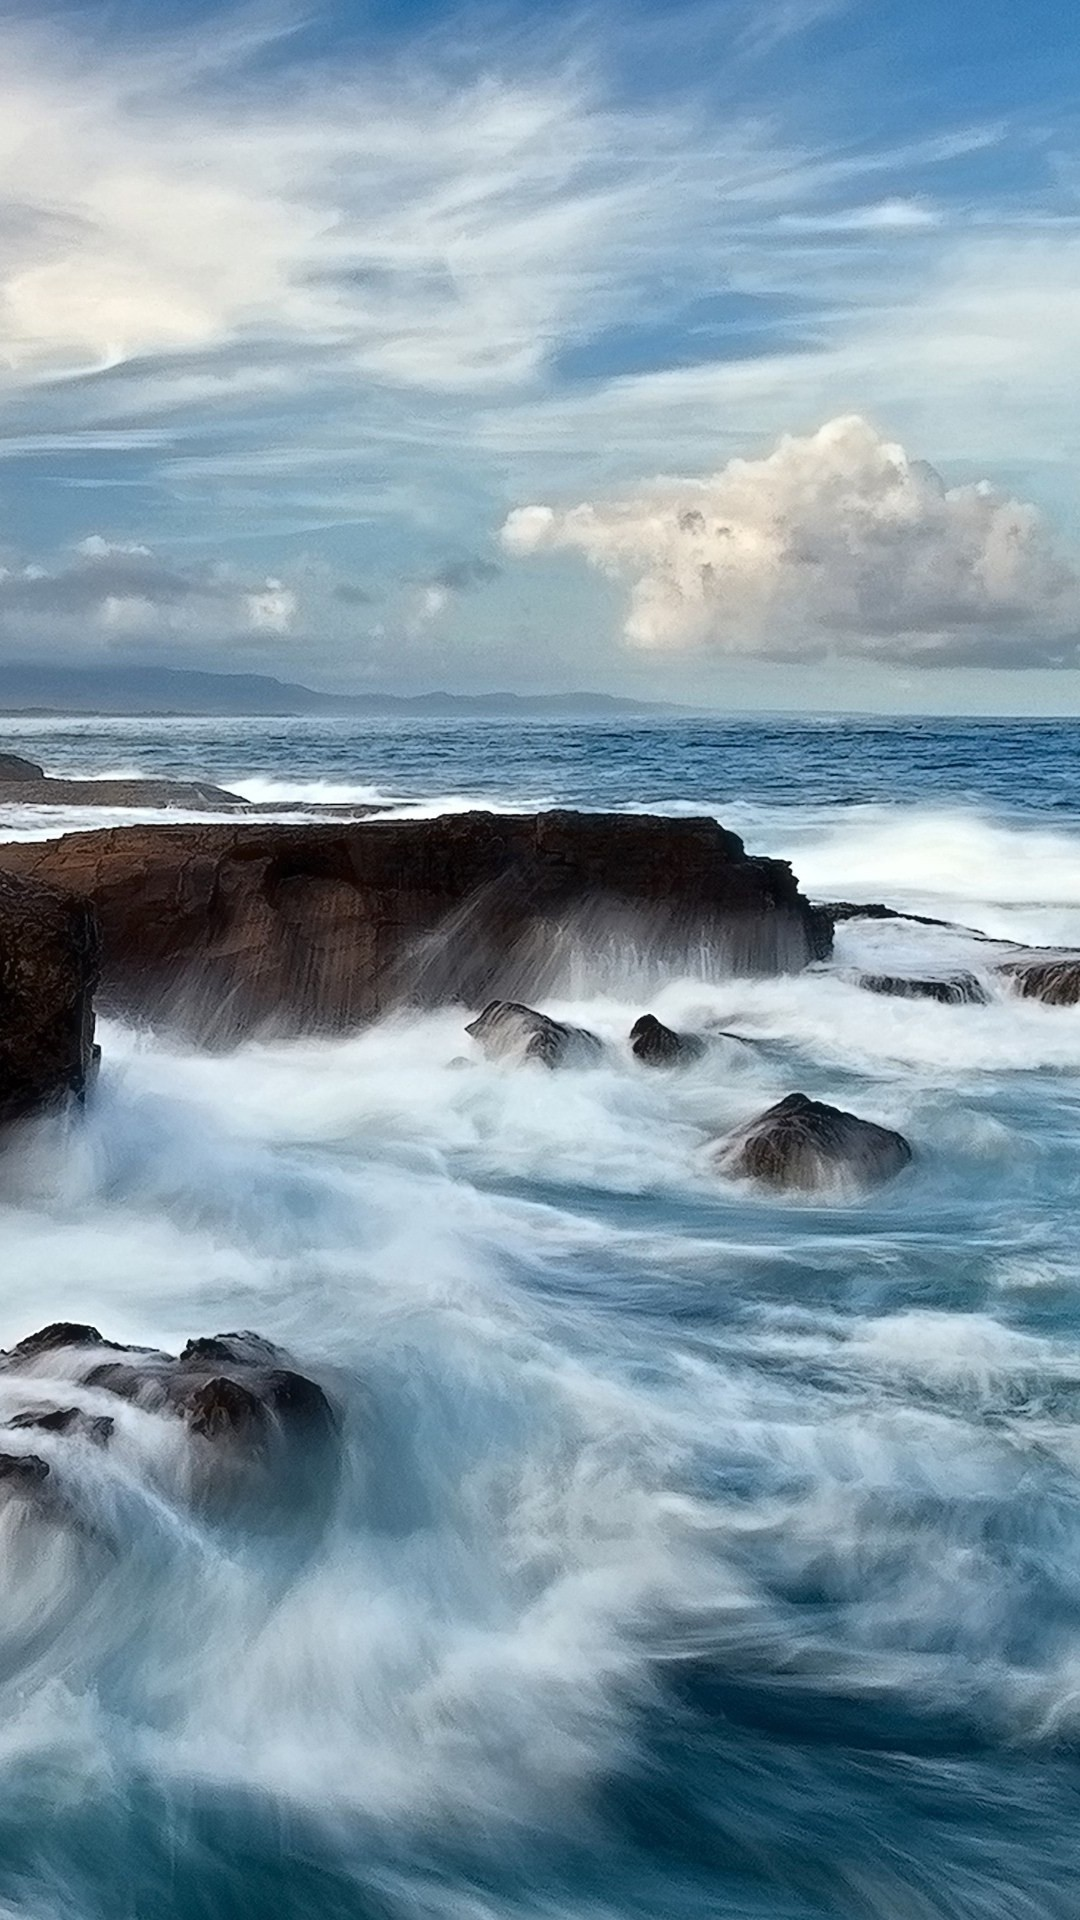 Waves breaking beach